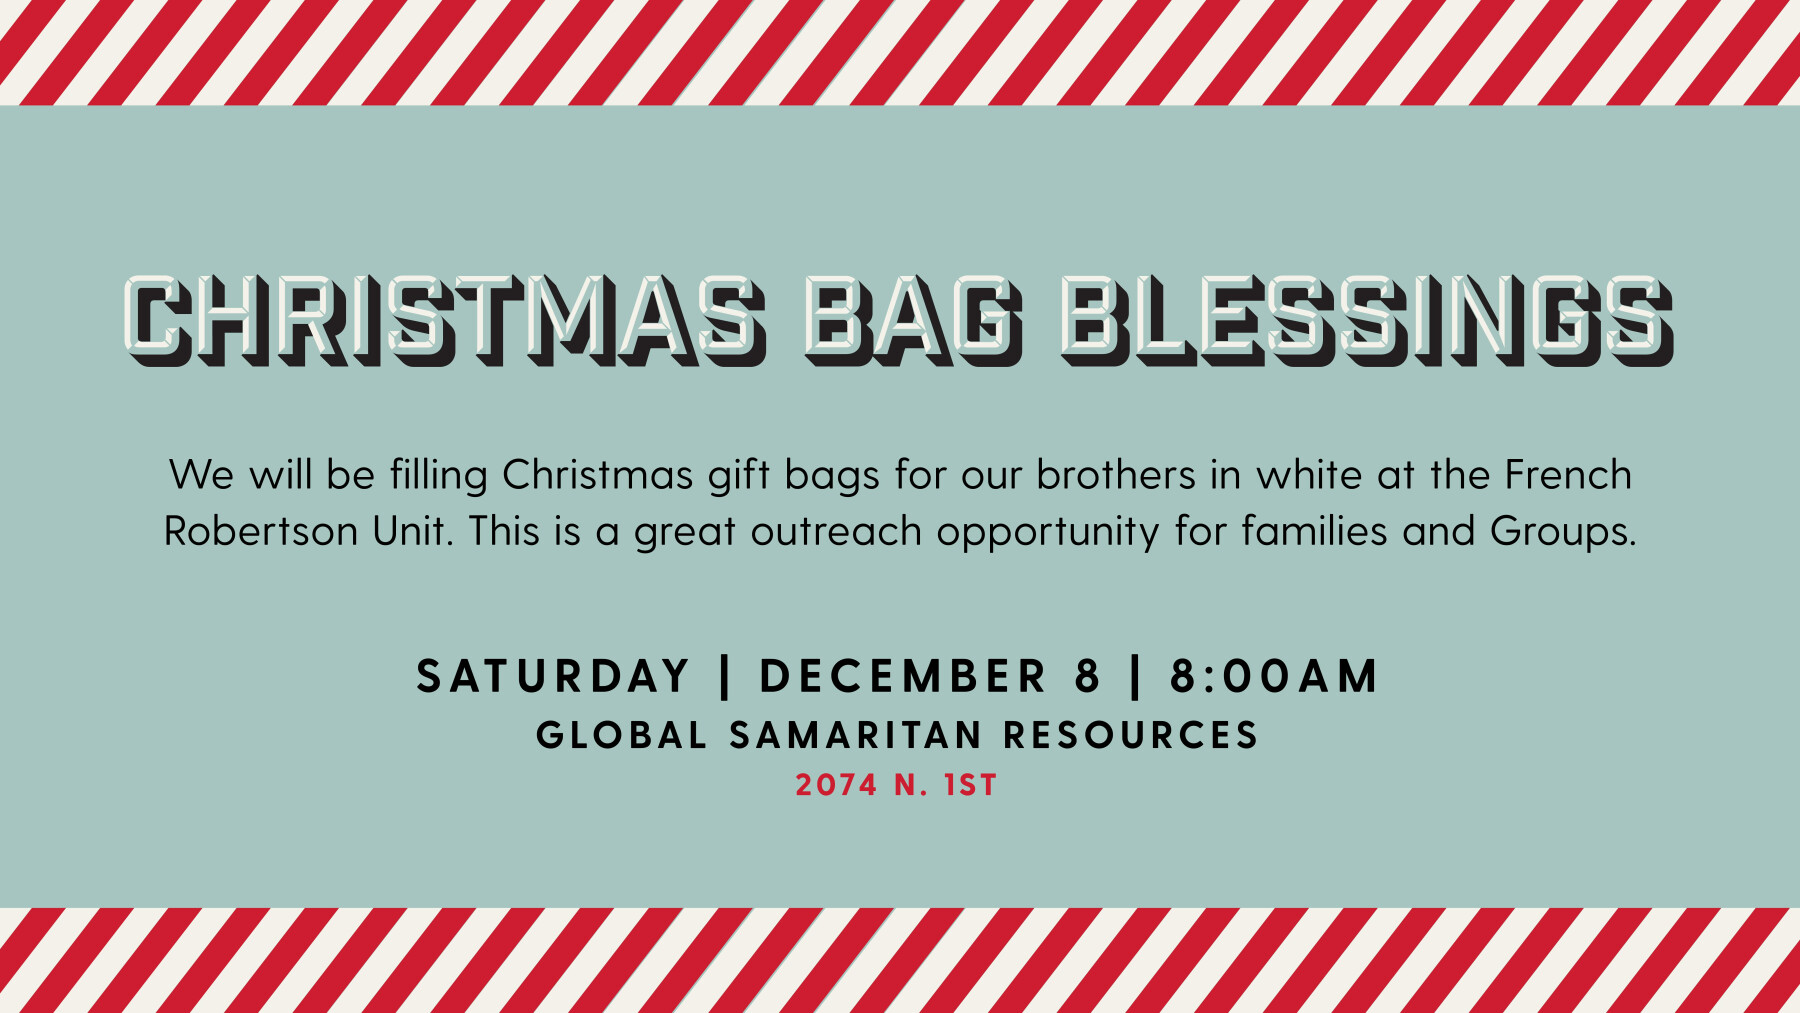 Christmas Bag Blessings